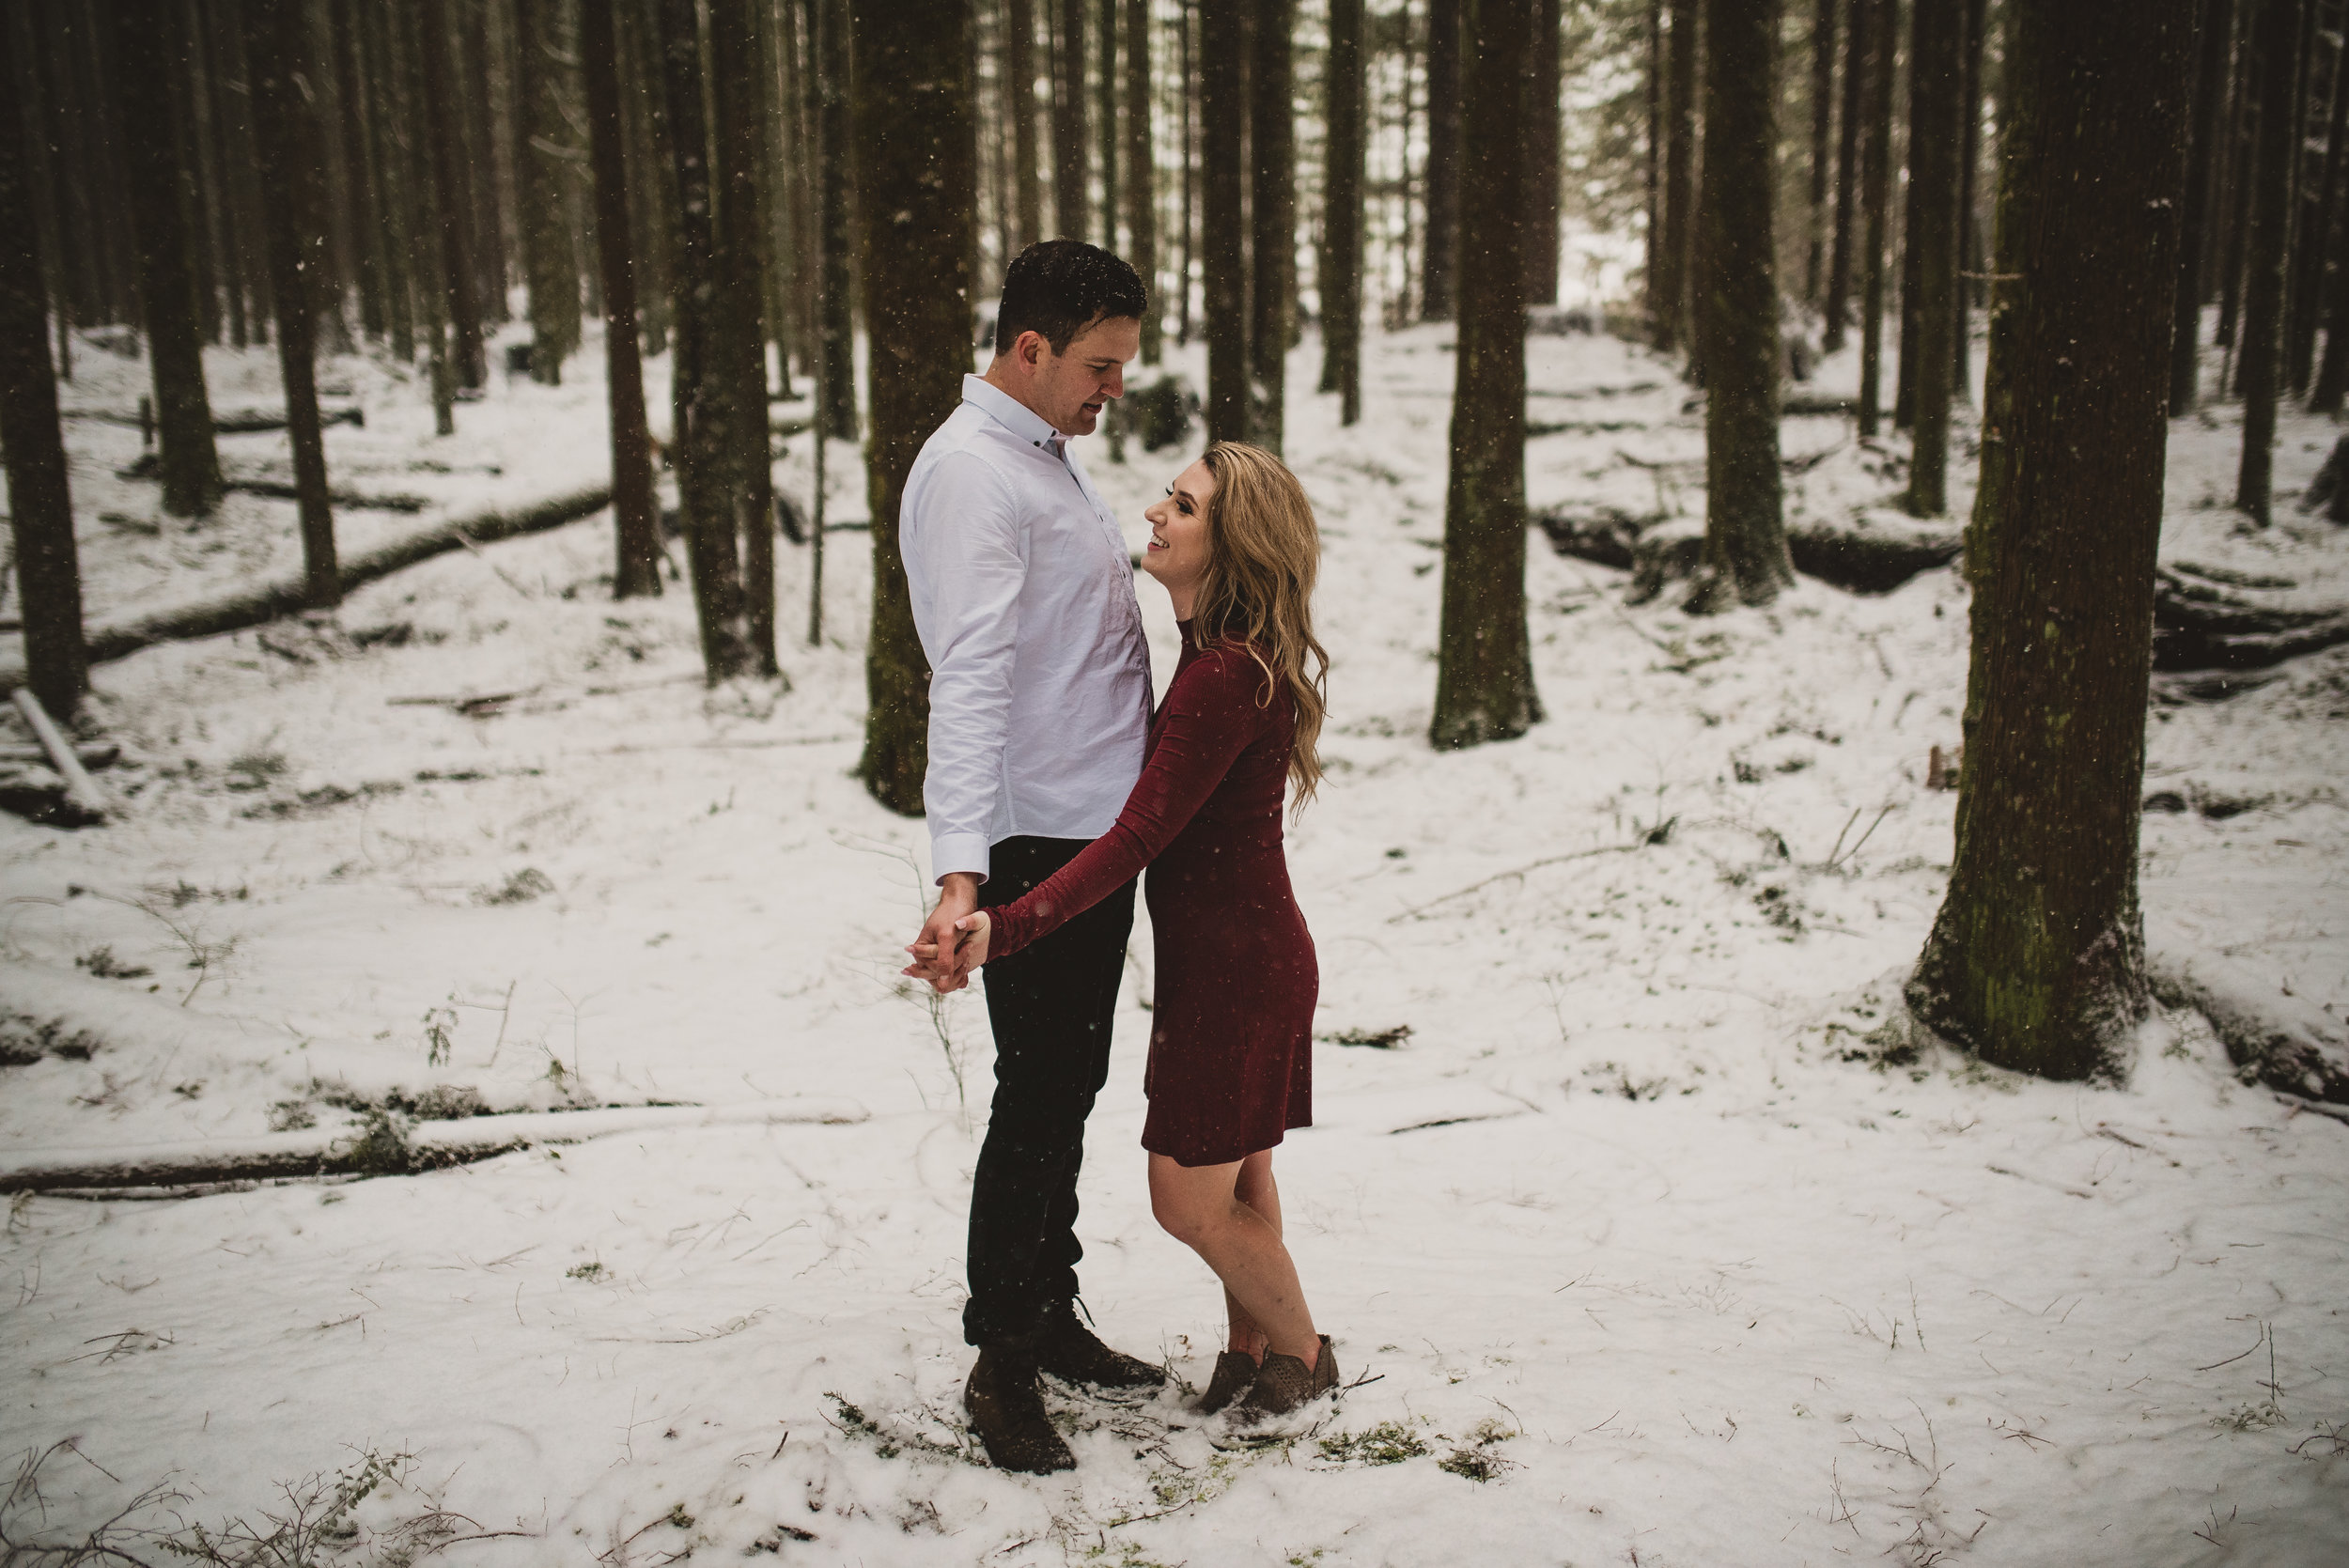 Moriah Jae Photography - Breton + Jeremy - Engagement (75 of 111).jpg